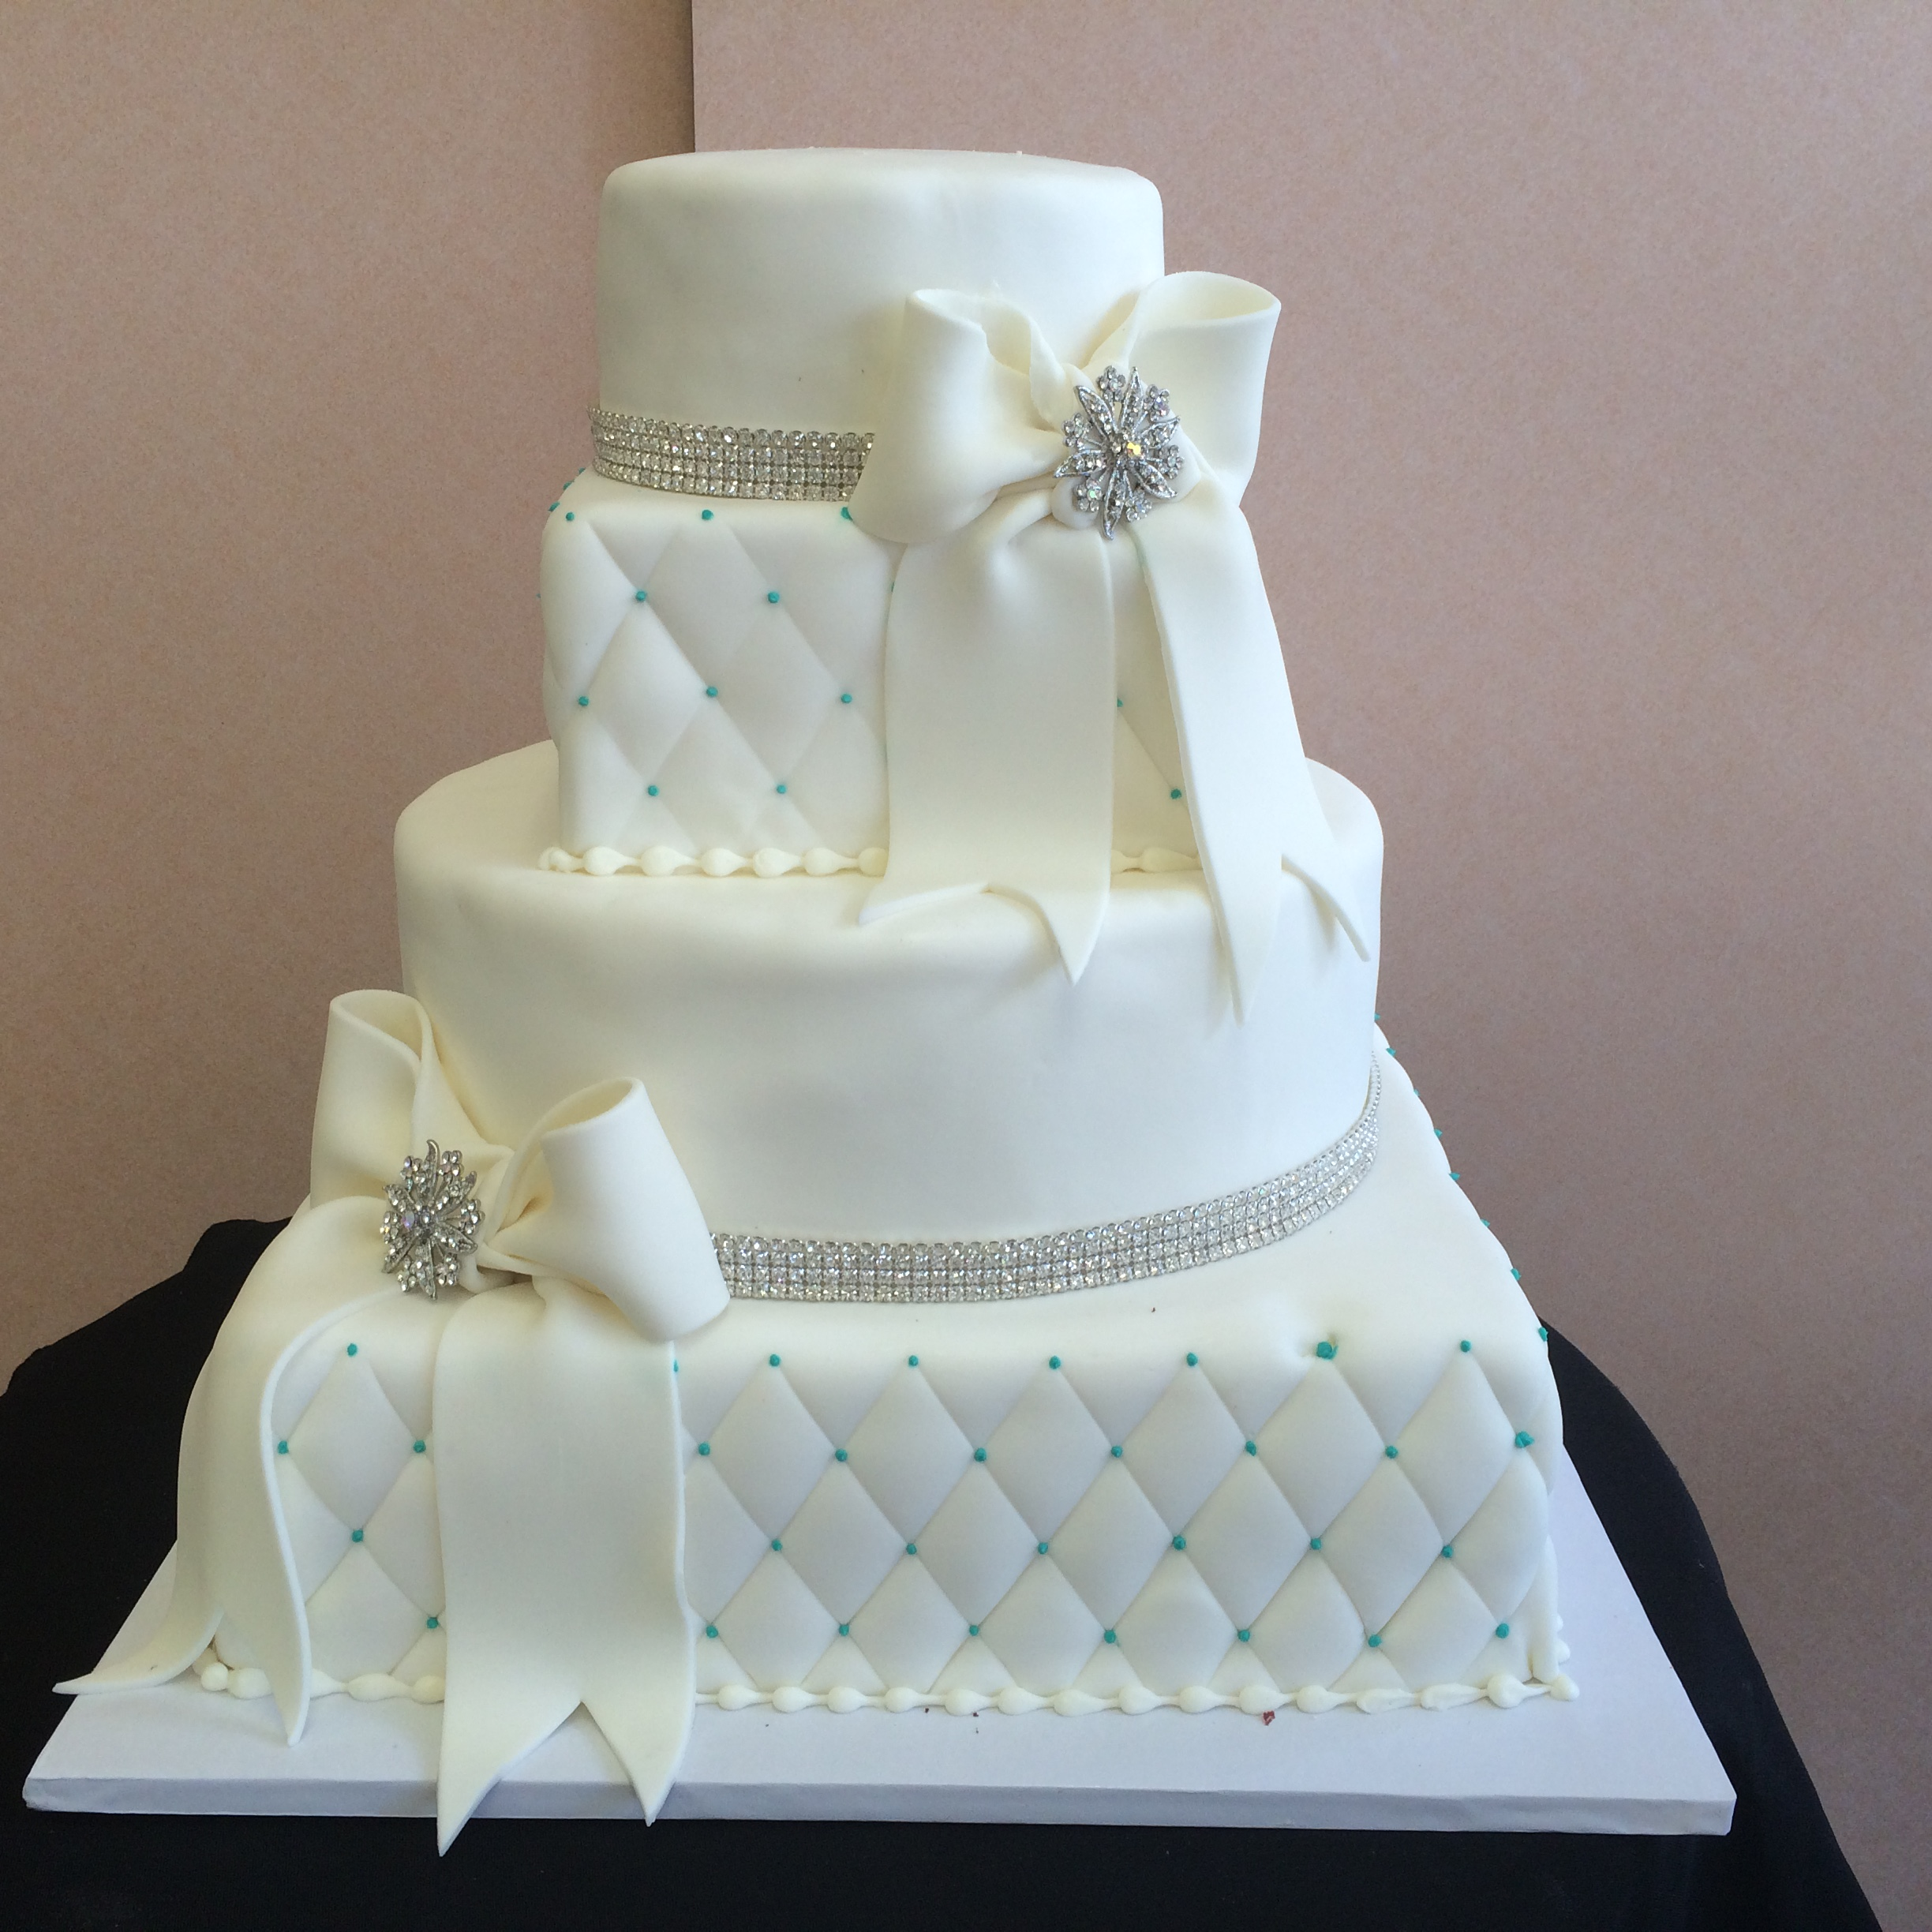 61 4 Tier in Rolled Fondant with Quilted Square Tiers, Round Tiers with Swarovski Crystals with Rolled Fondant Bow & Brooch